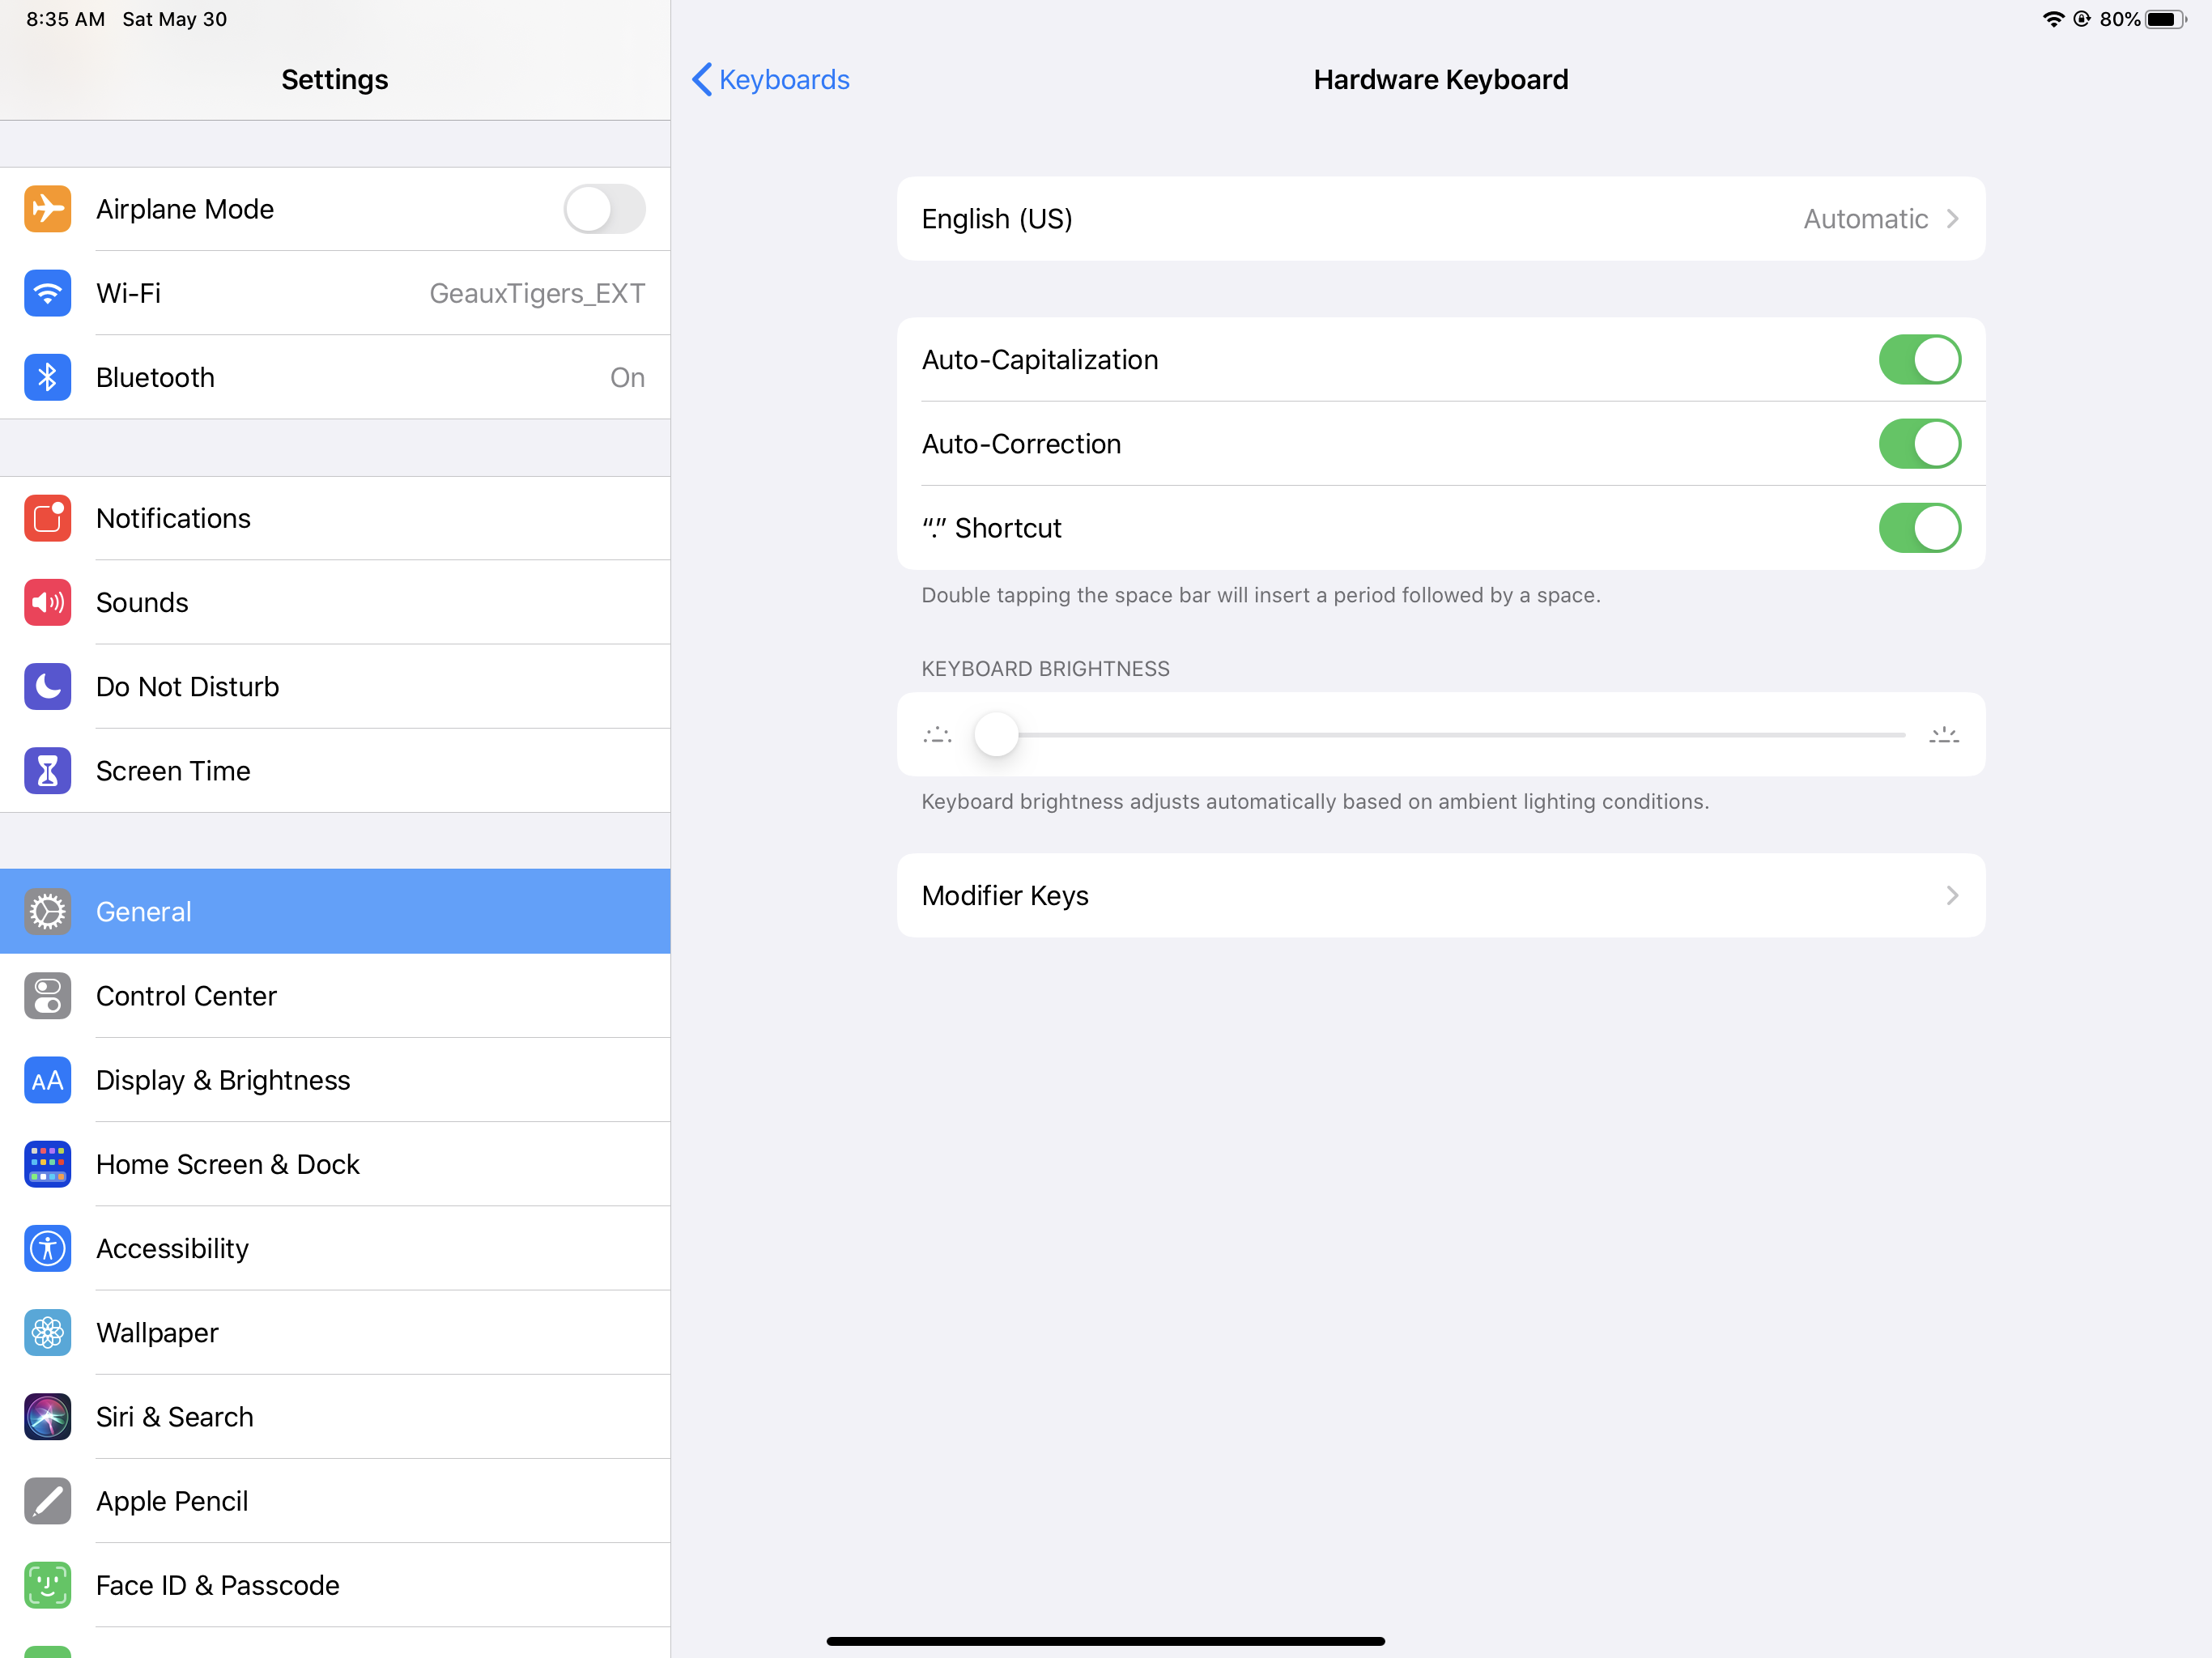 IPadOS Hardware Keyboard Settings